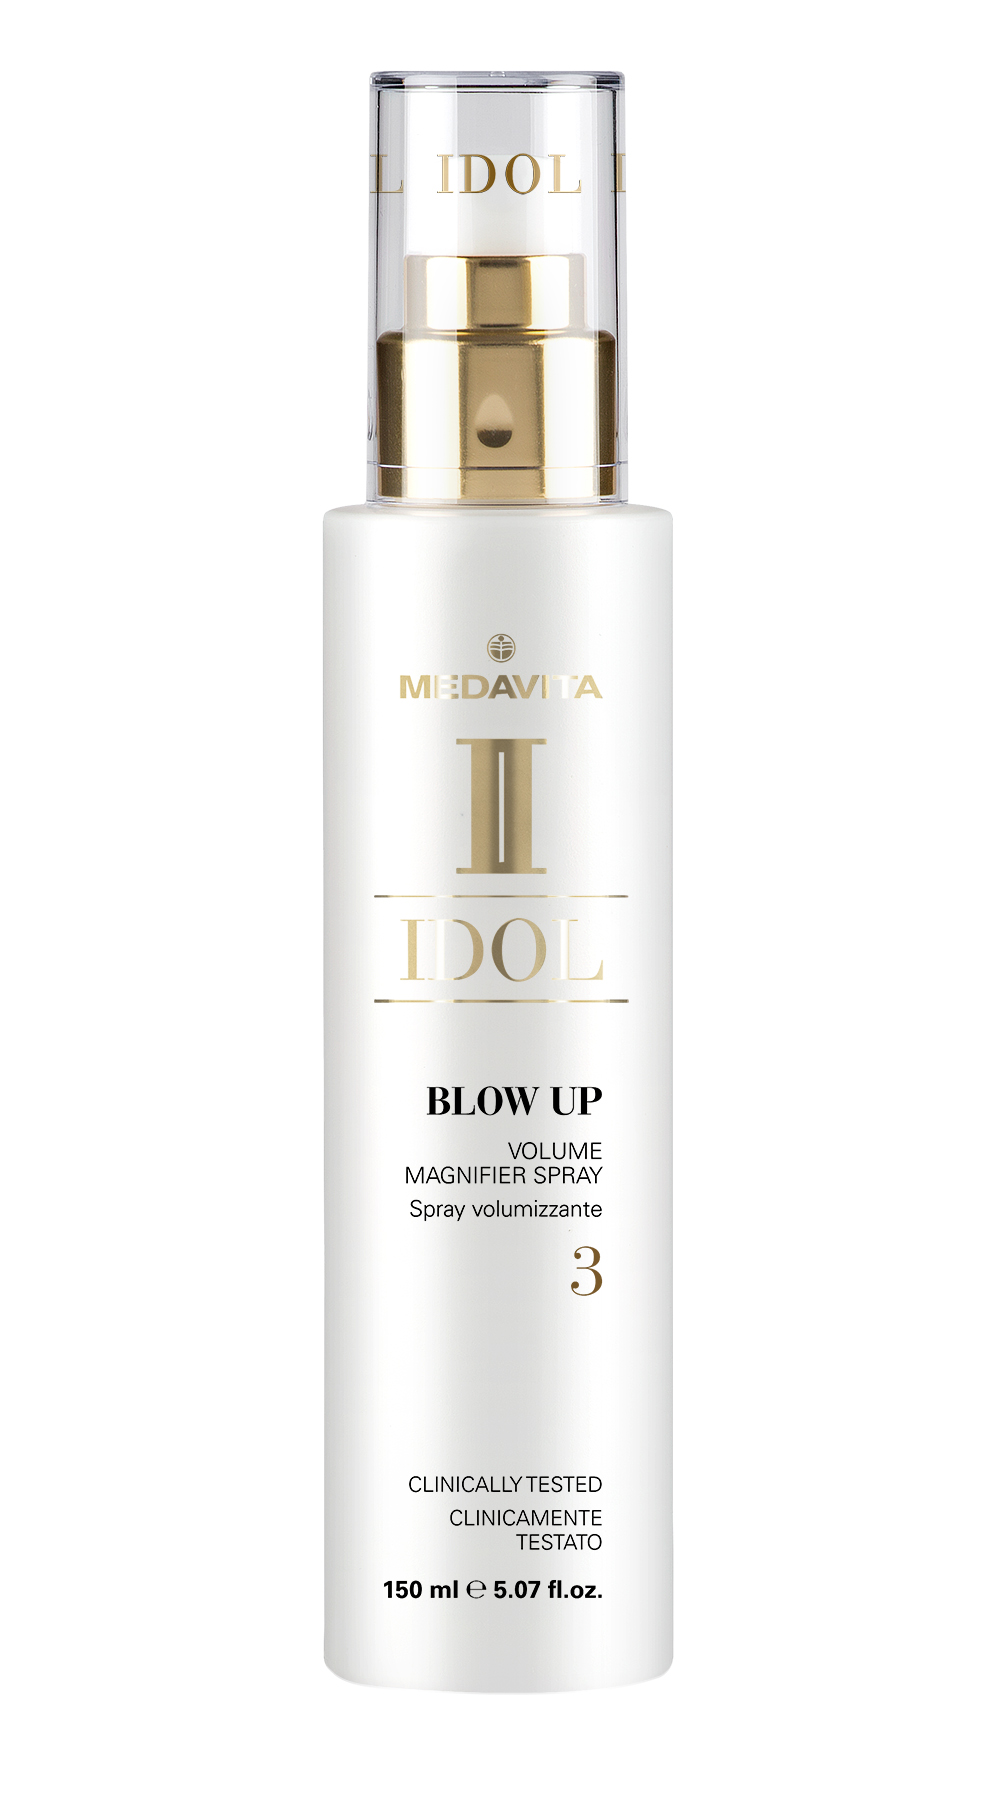 BlowUp IDOL 150ml DEF-klein